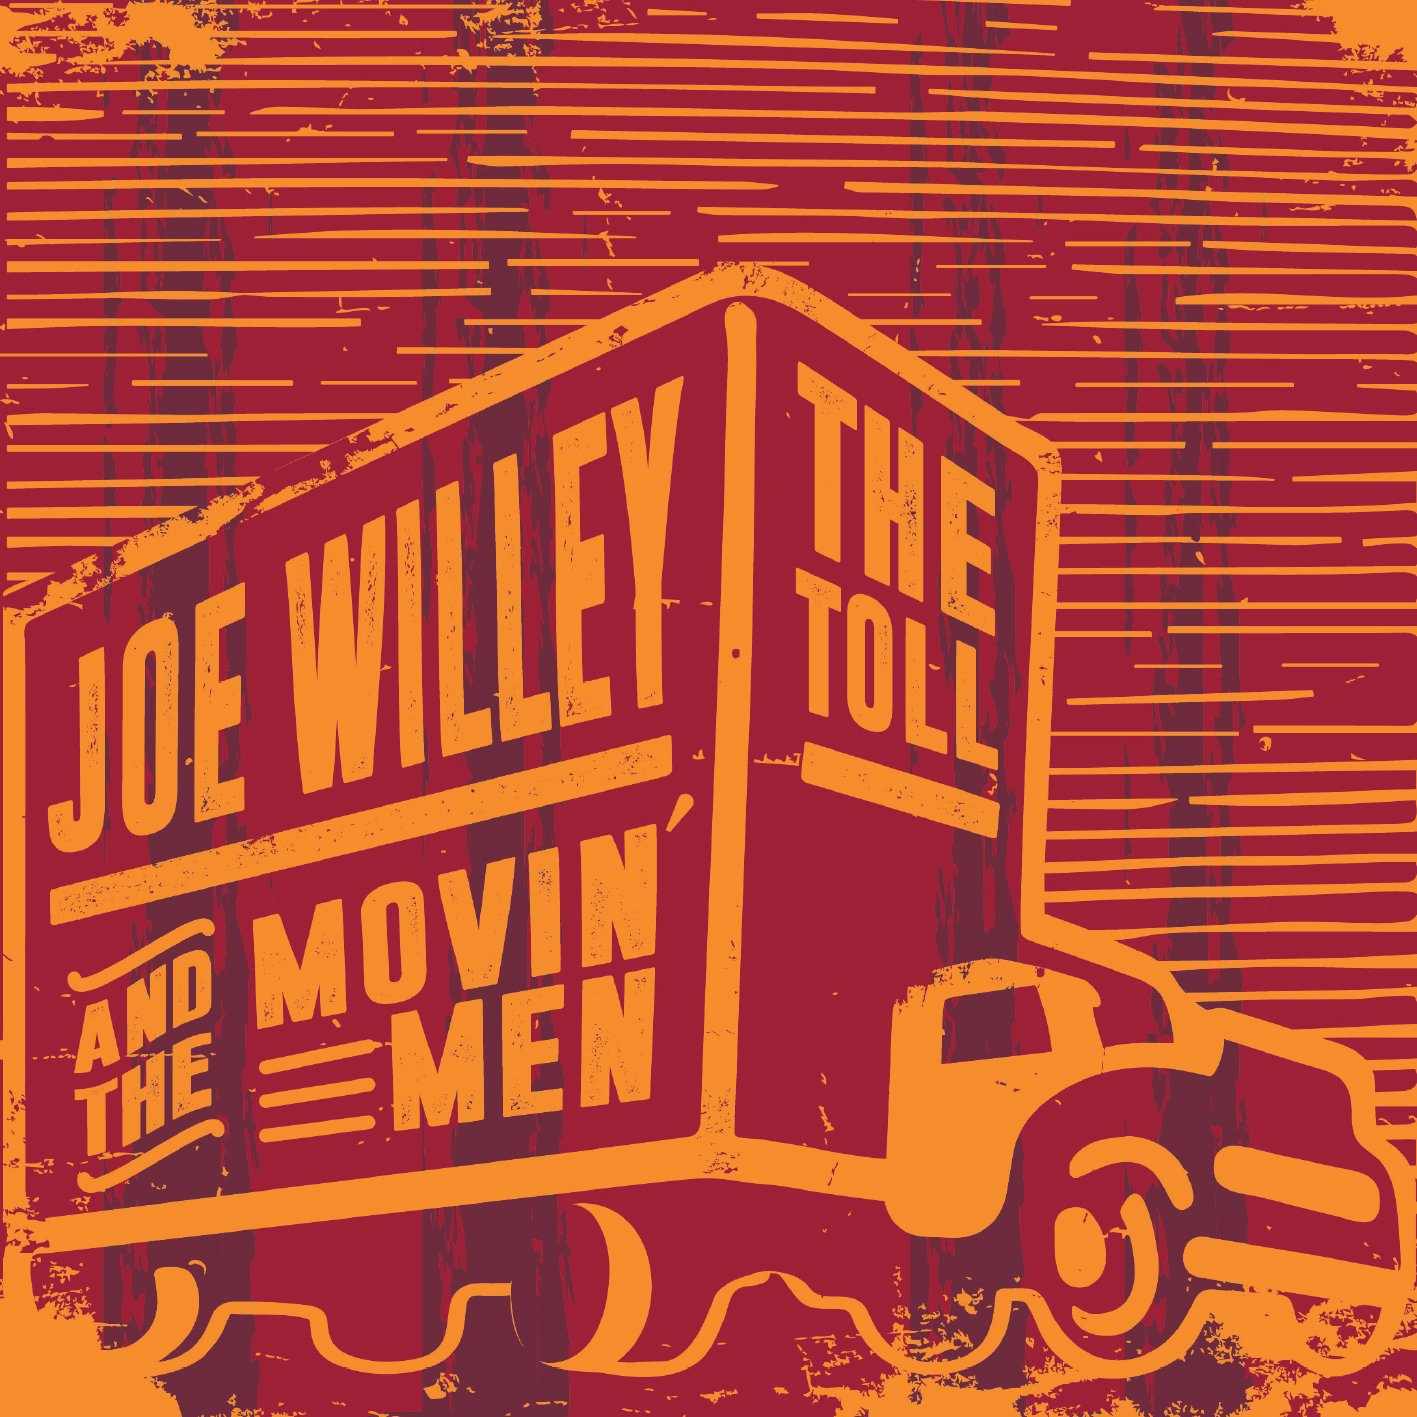 Joe Willey and the Movin' Men | ReverbNation